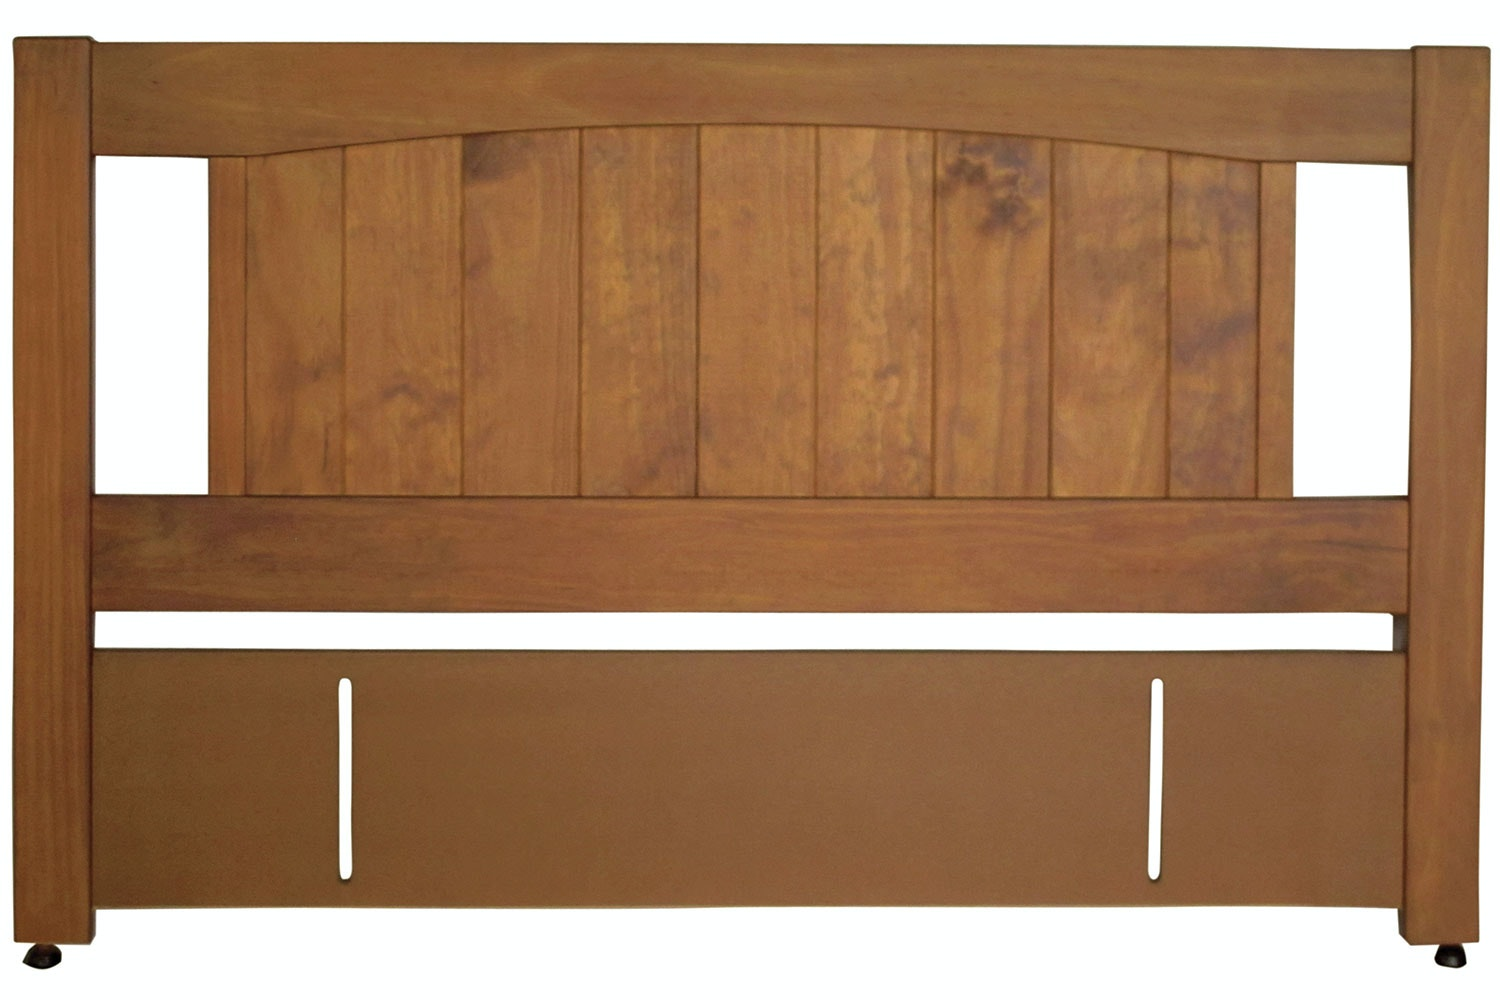 Calais King Headboard by Coastwood Furniture